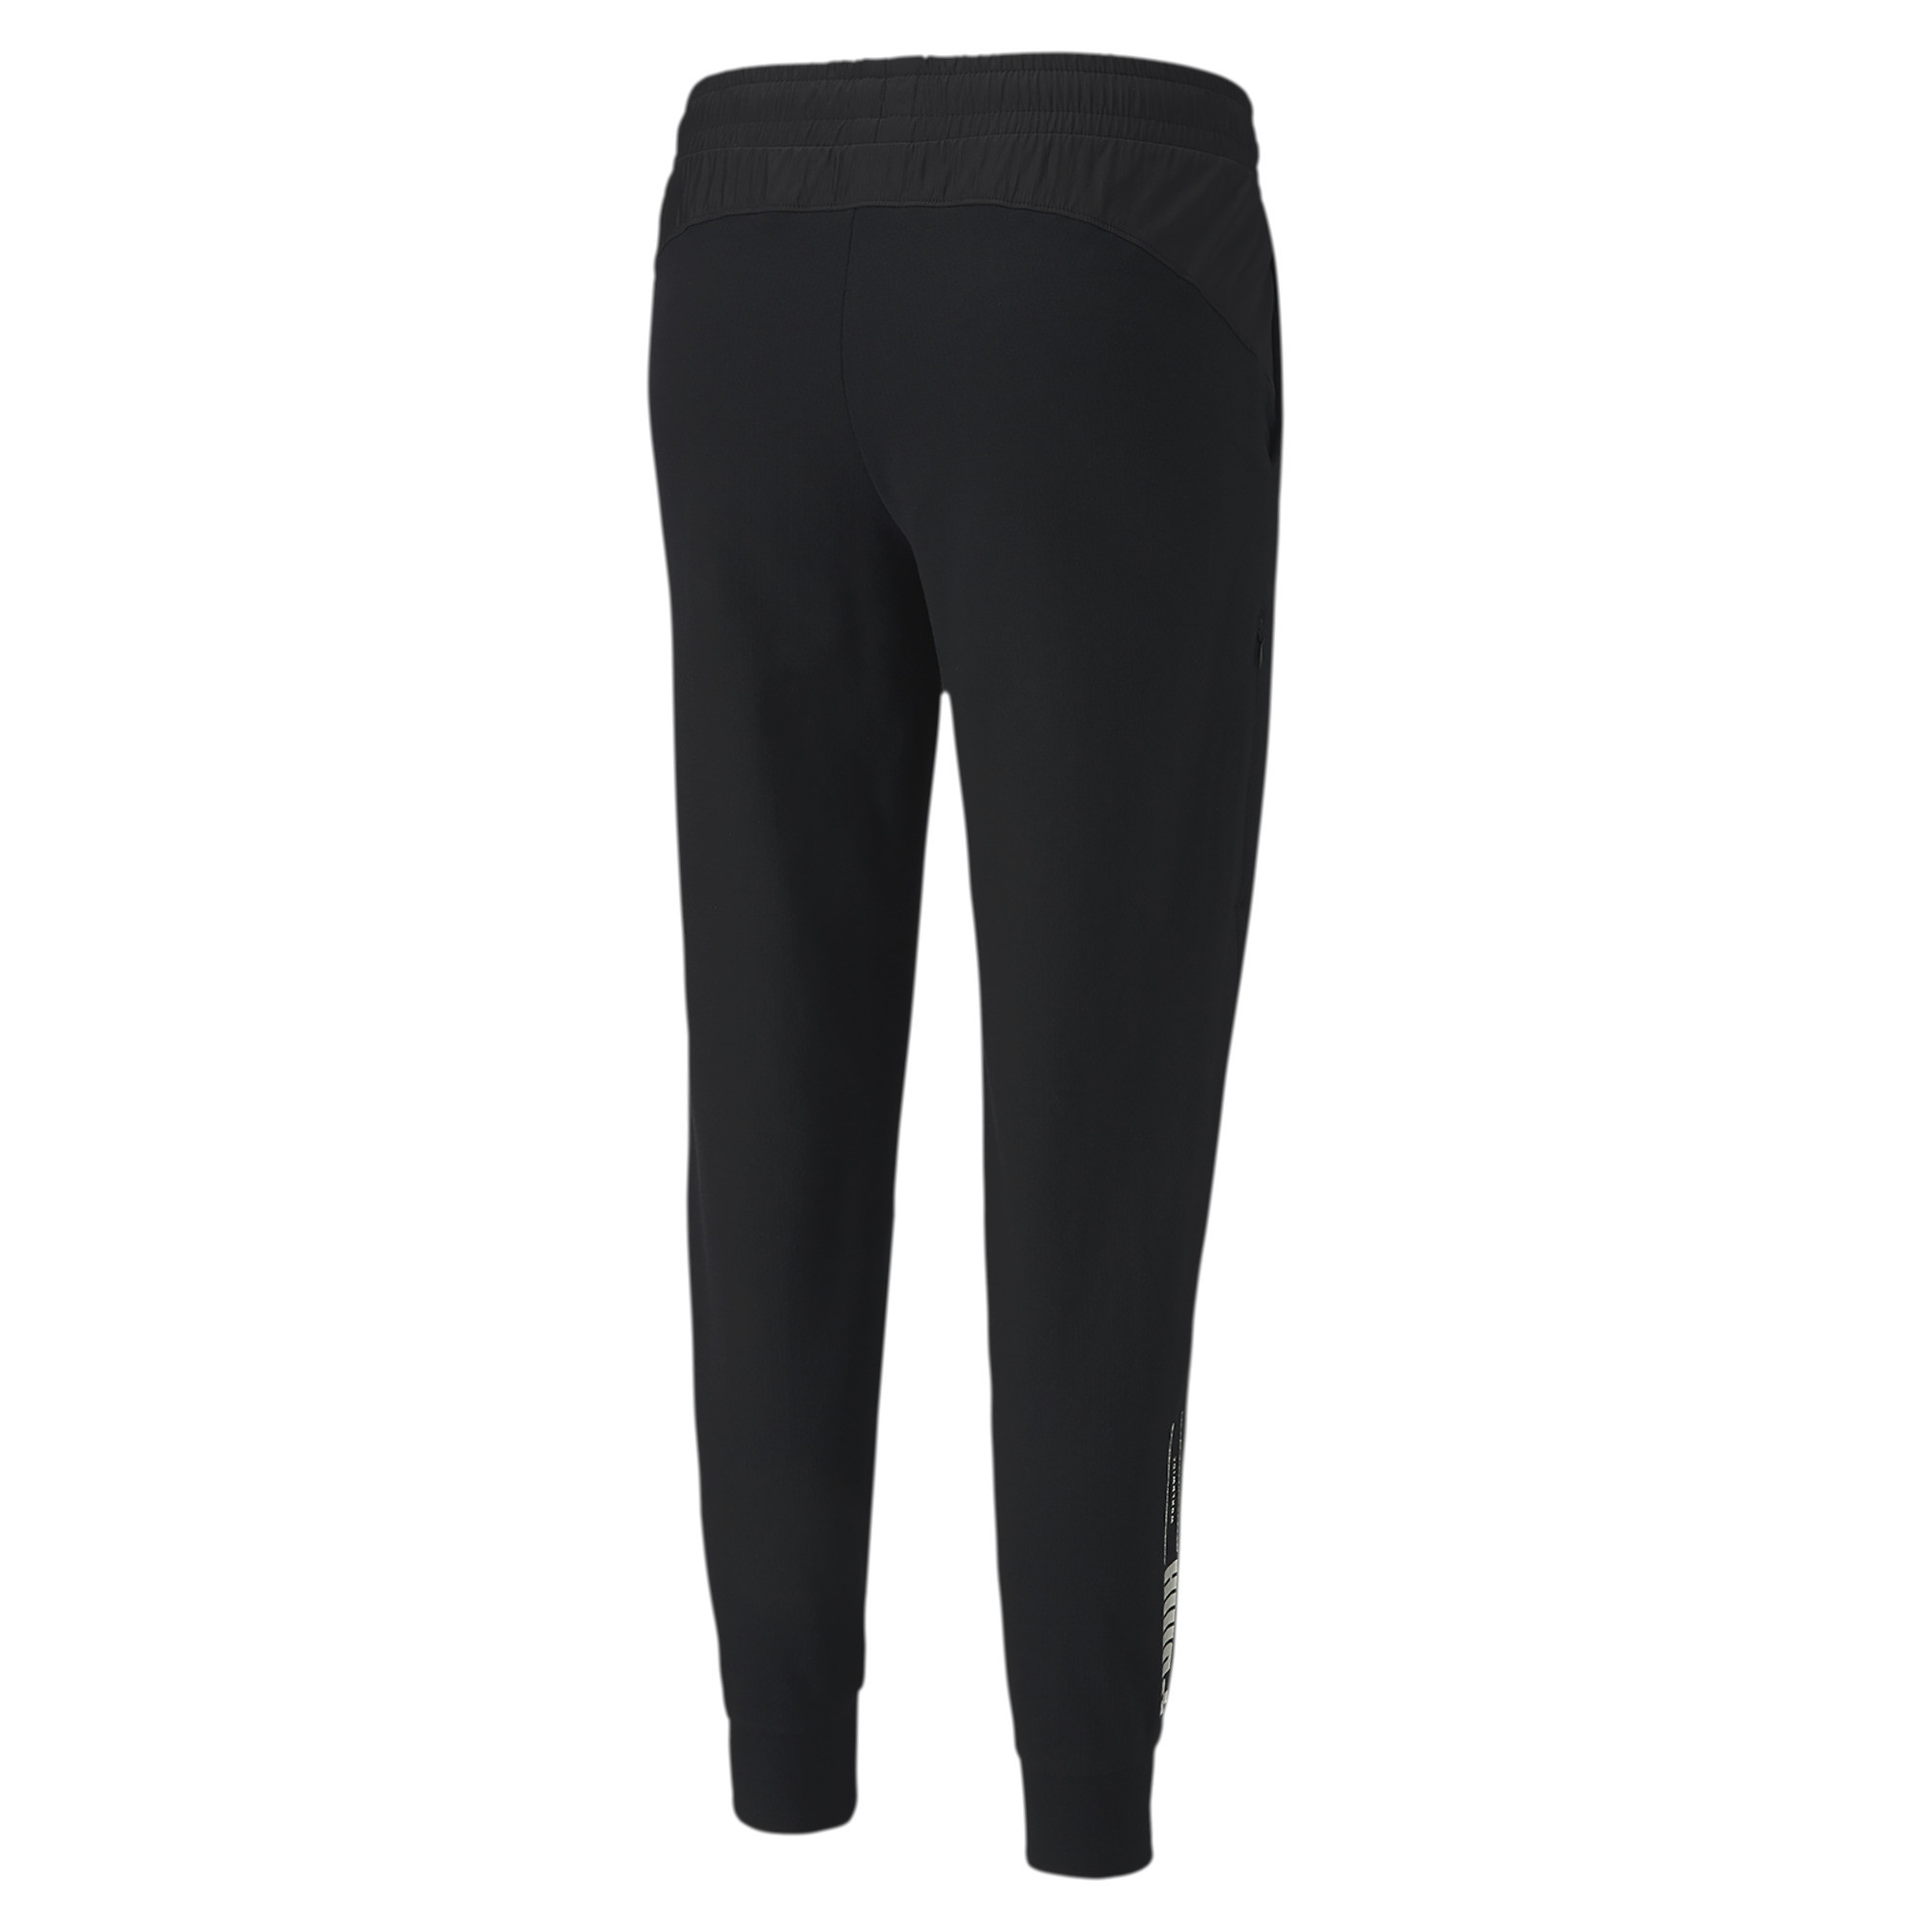 PUMA-Women-039-s-NU-TILITY-Sweatpants thumbnail 10